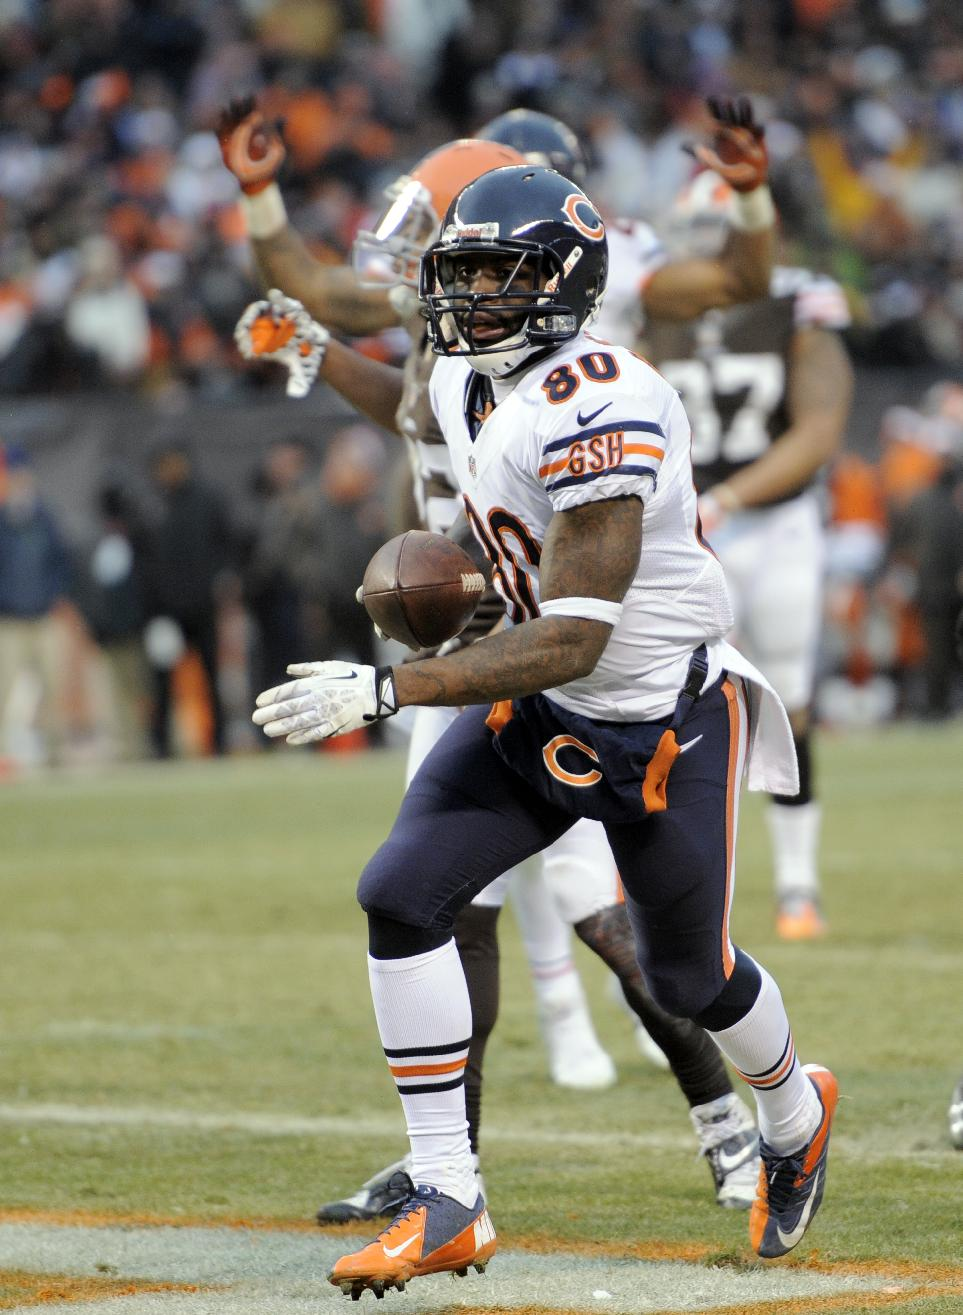 Chicago Bears wide receiver Earl Bennett (80) runs in to score on a 4-yard touchdown catch against the Cleveland Browns in the fourth quarter of an NFL football game, Sunday, Dec. 15, 2013, in Cleveland